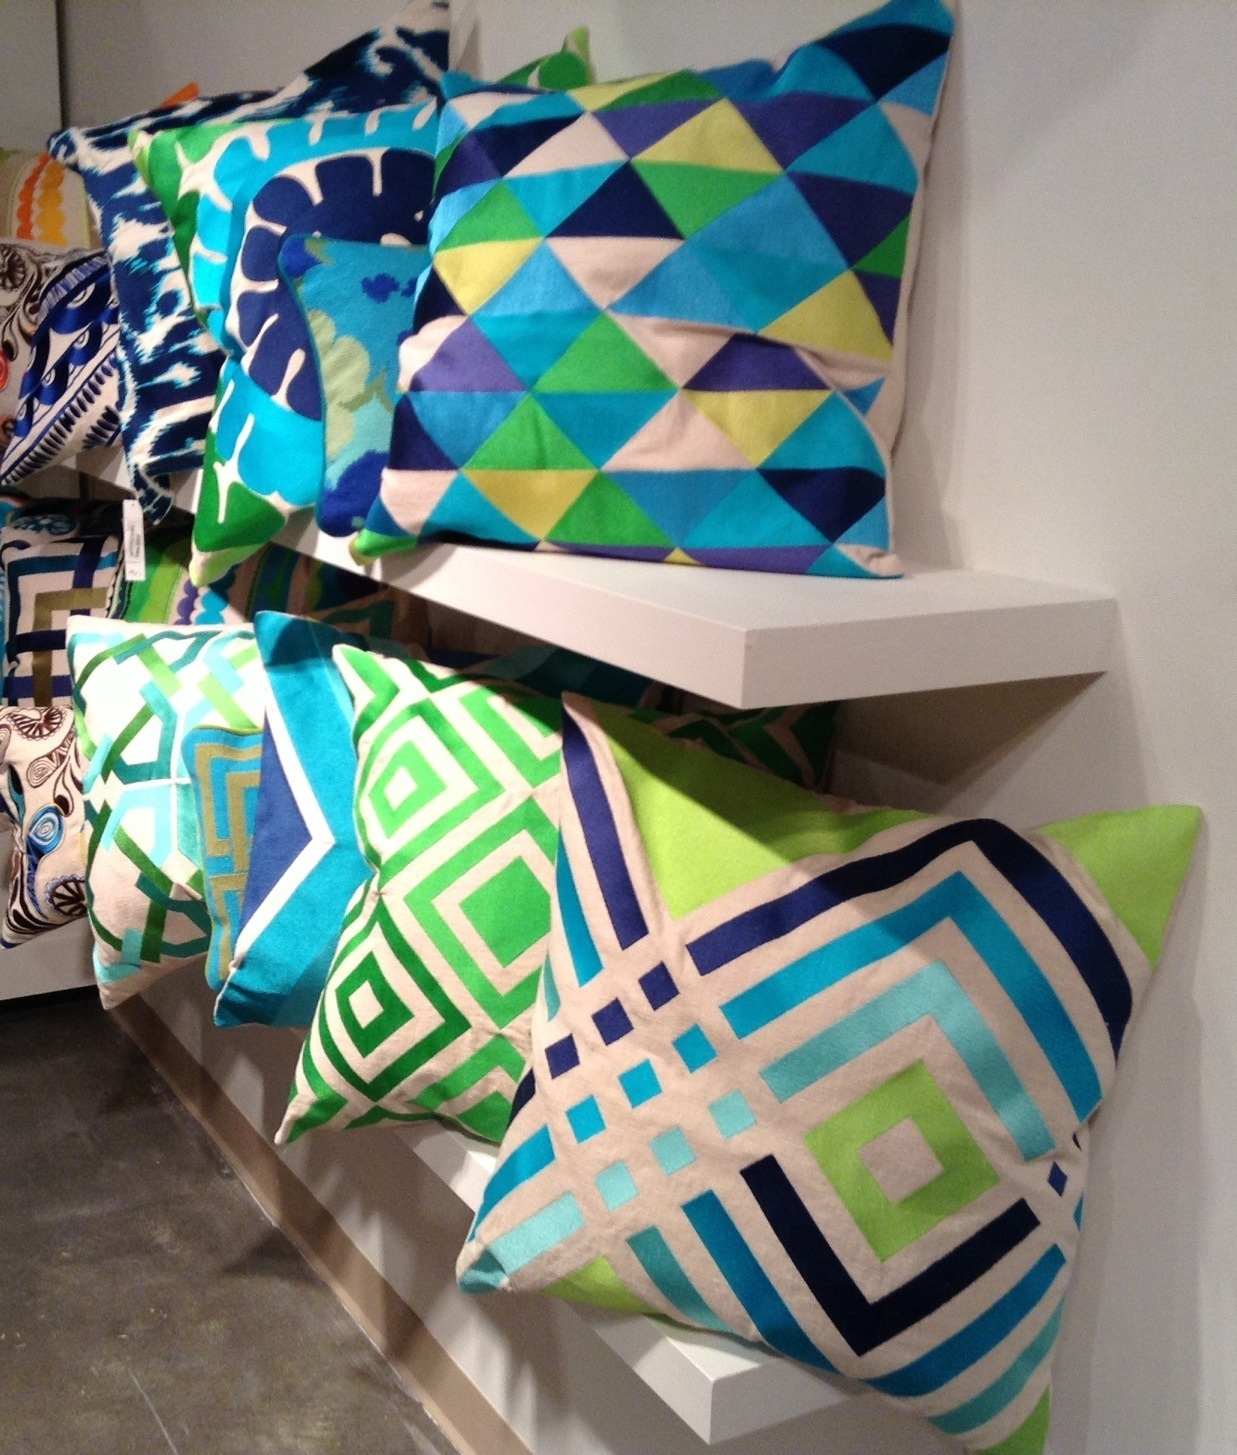 Geometrics in blues and greens - Peking Handicraft